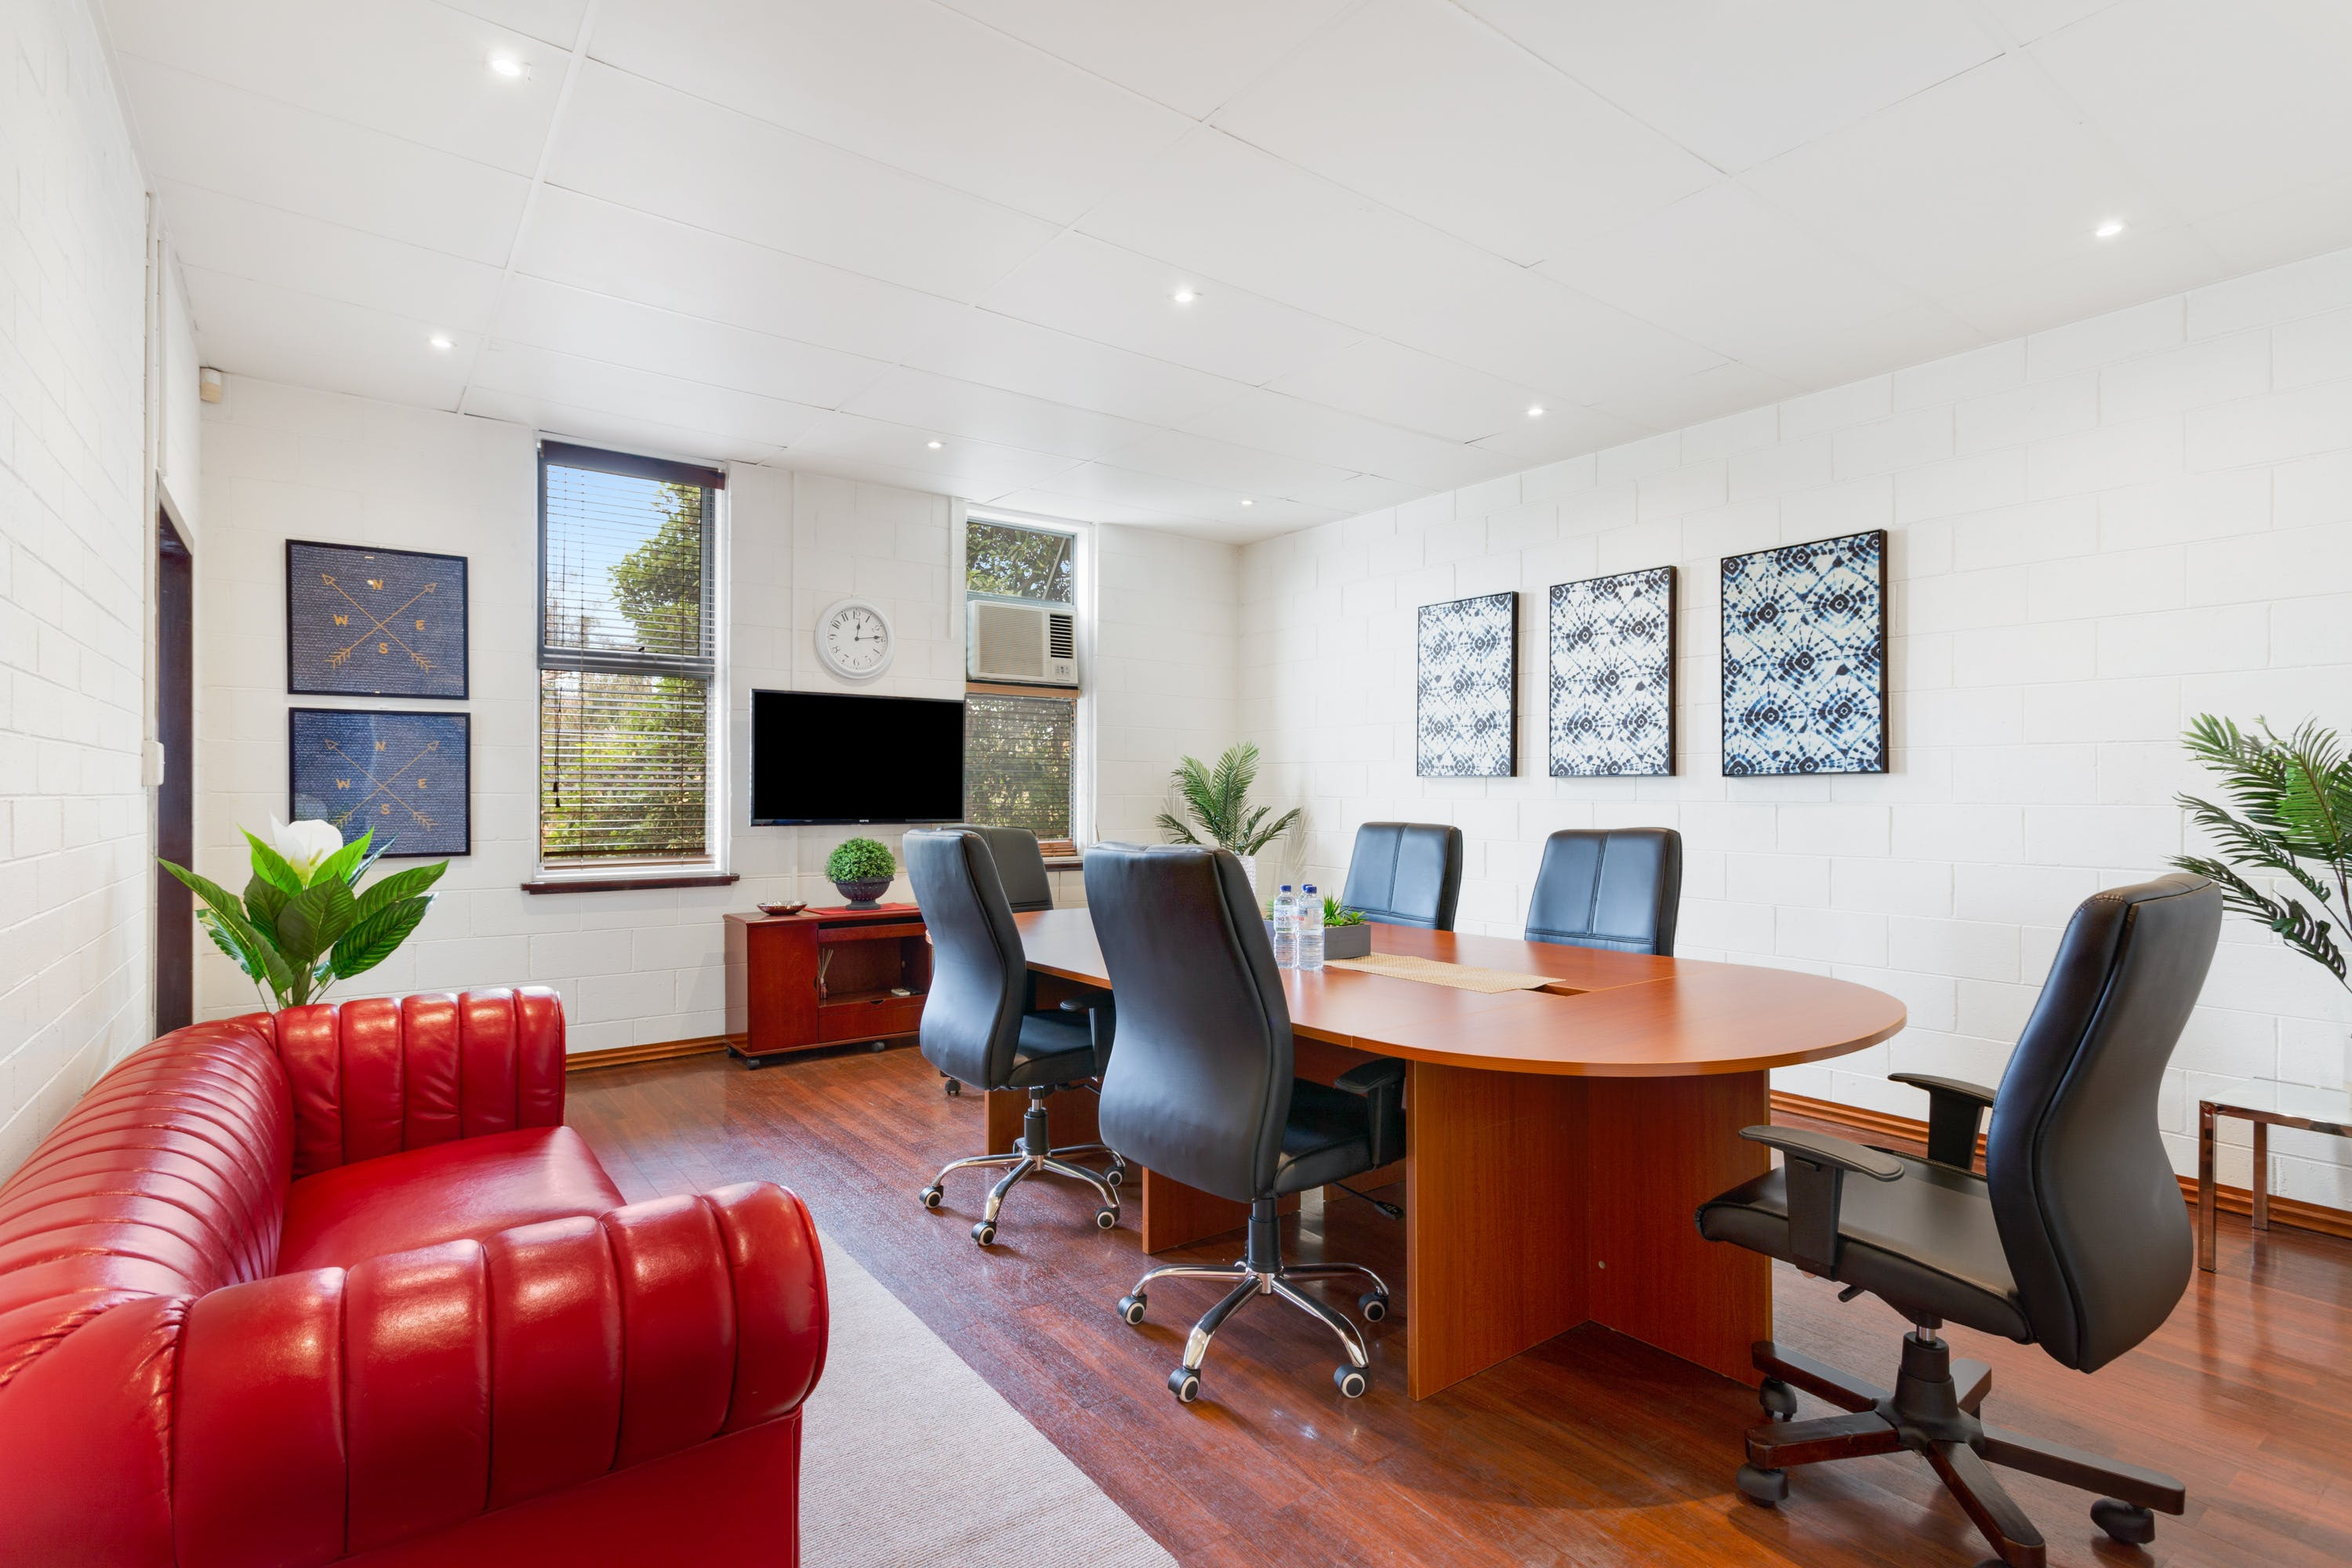 Port Melbourne Loft - Multi-use Office Space, serviced office at Port Melbourne Loft - Affordable, Multi-Use Office Space in Great Location, image 1